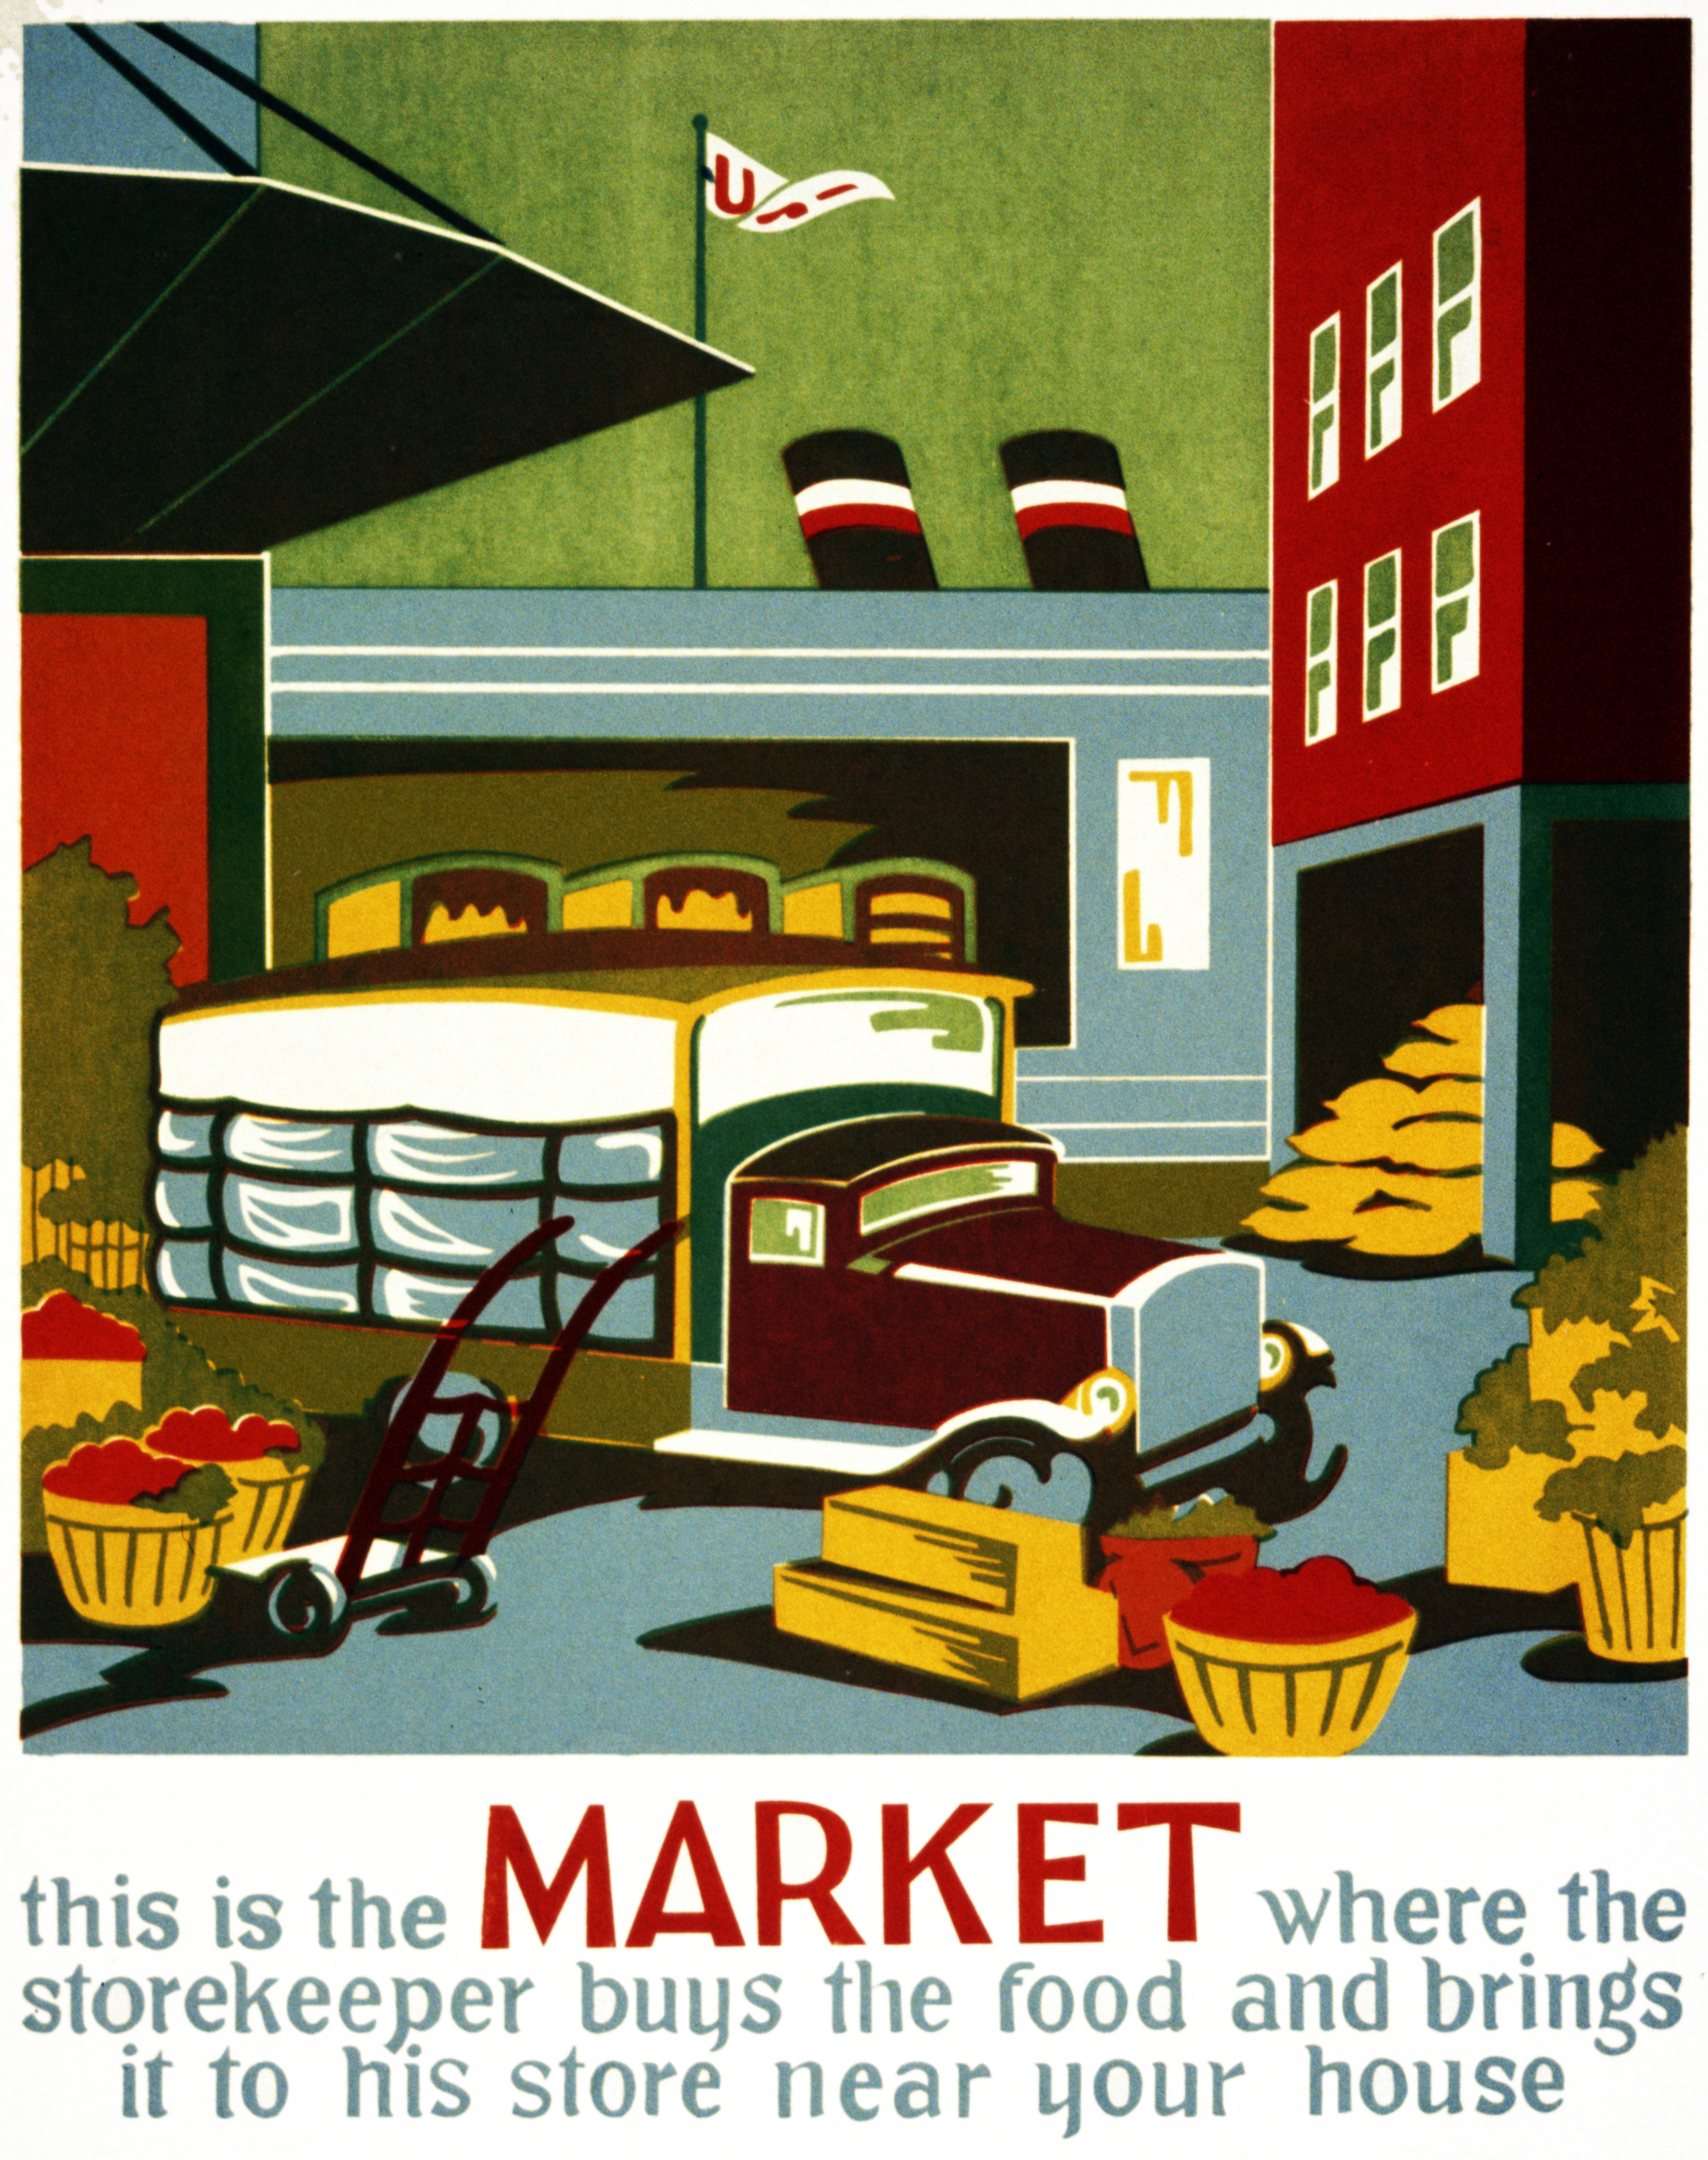 https://upload.wikimedia.org/wikipedia/commons/d/dd/This_is_the_market%2C_WPA_poster%2C_1937.jpg